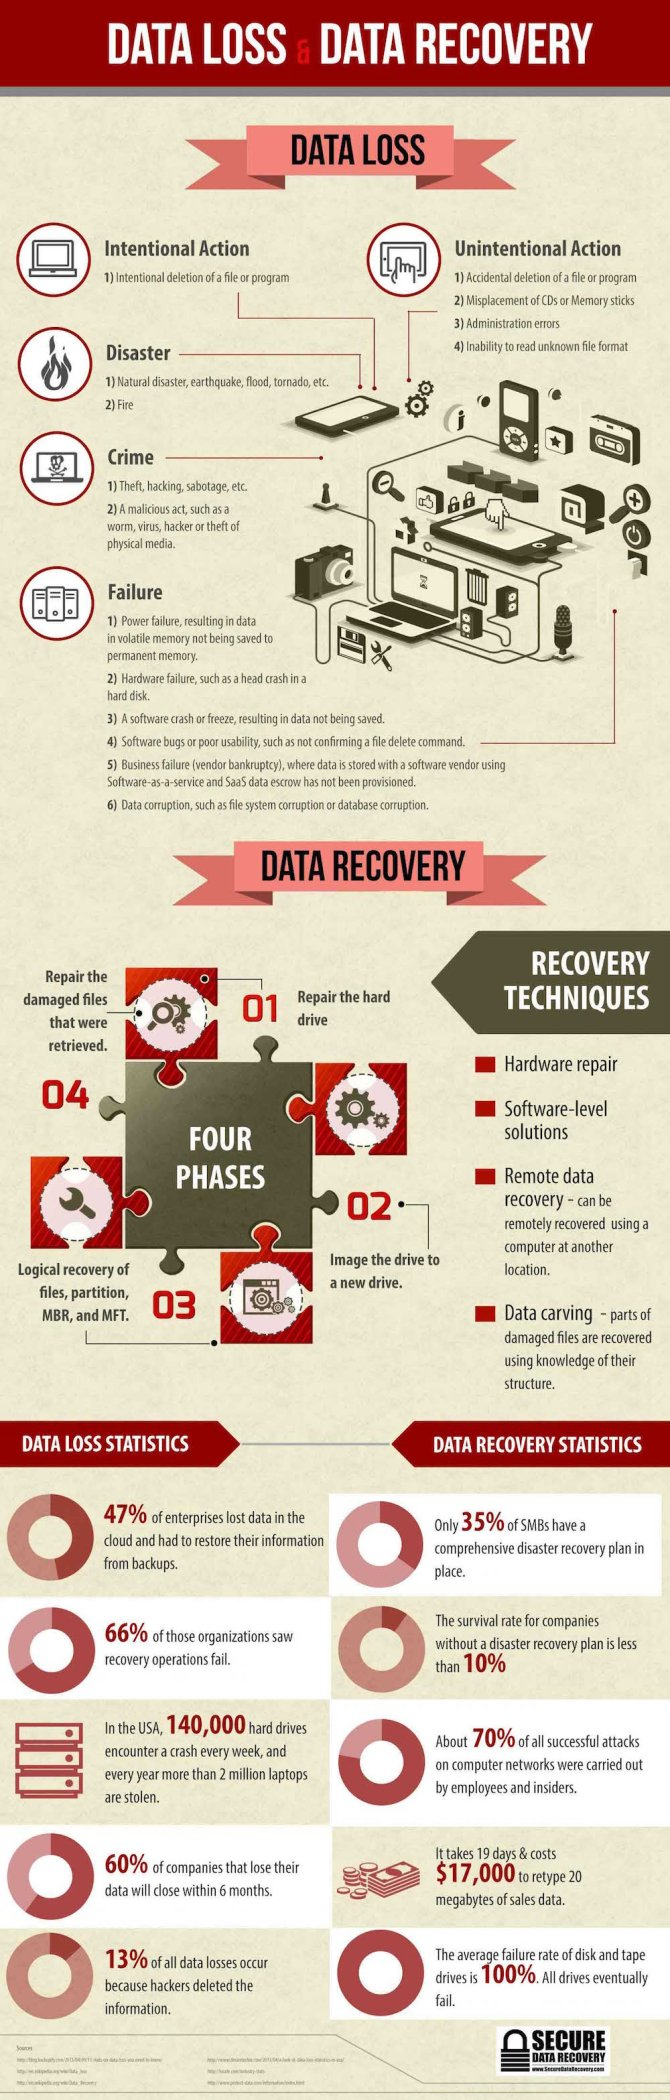 data-loss-data-recovery_infographic-here